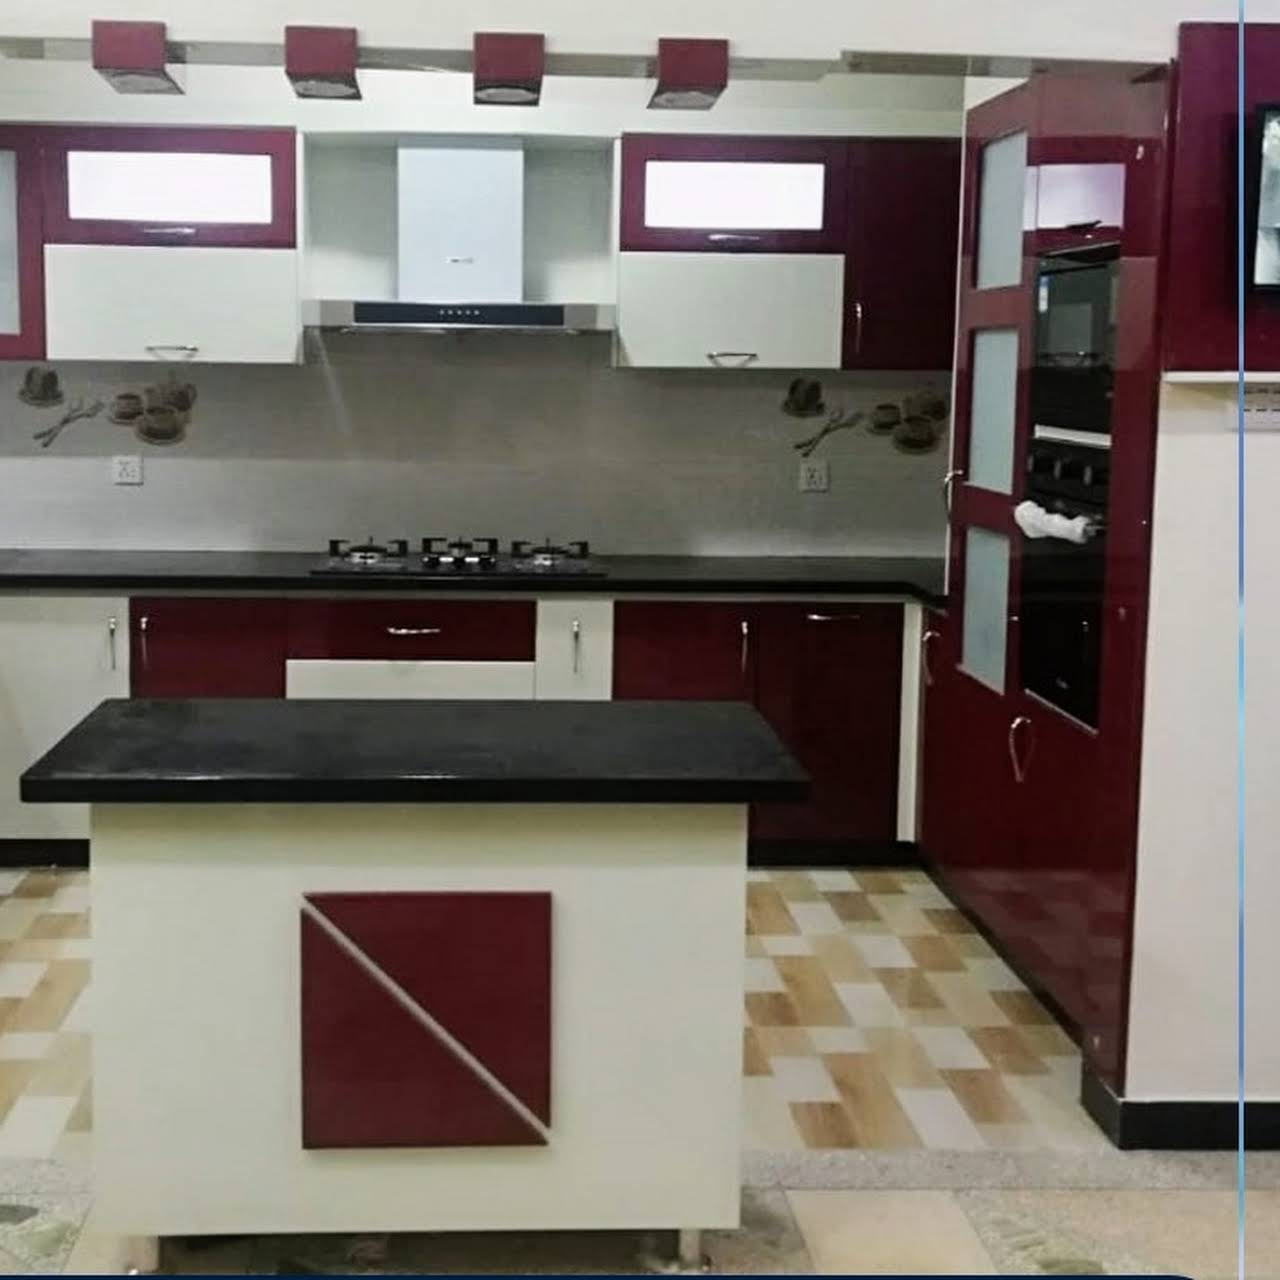 Mini Cucine (Italian Kitchens) Pakistan - Mini Cucine Pakistan is